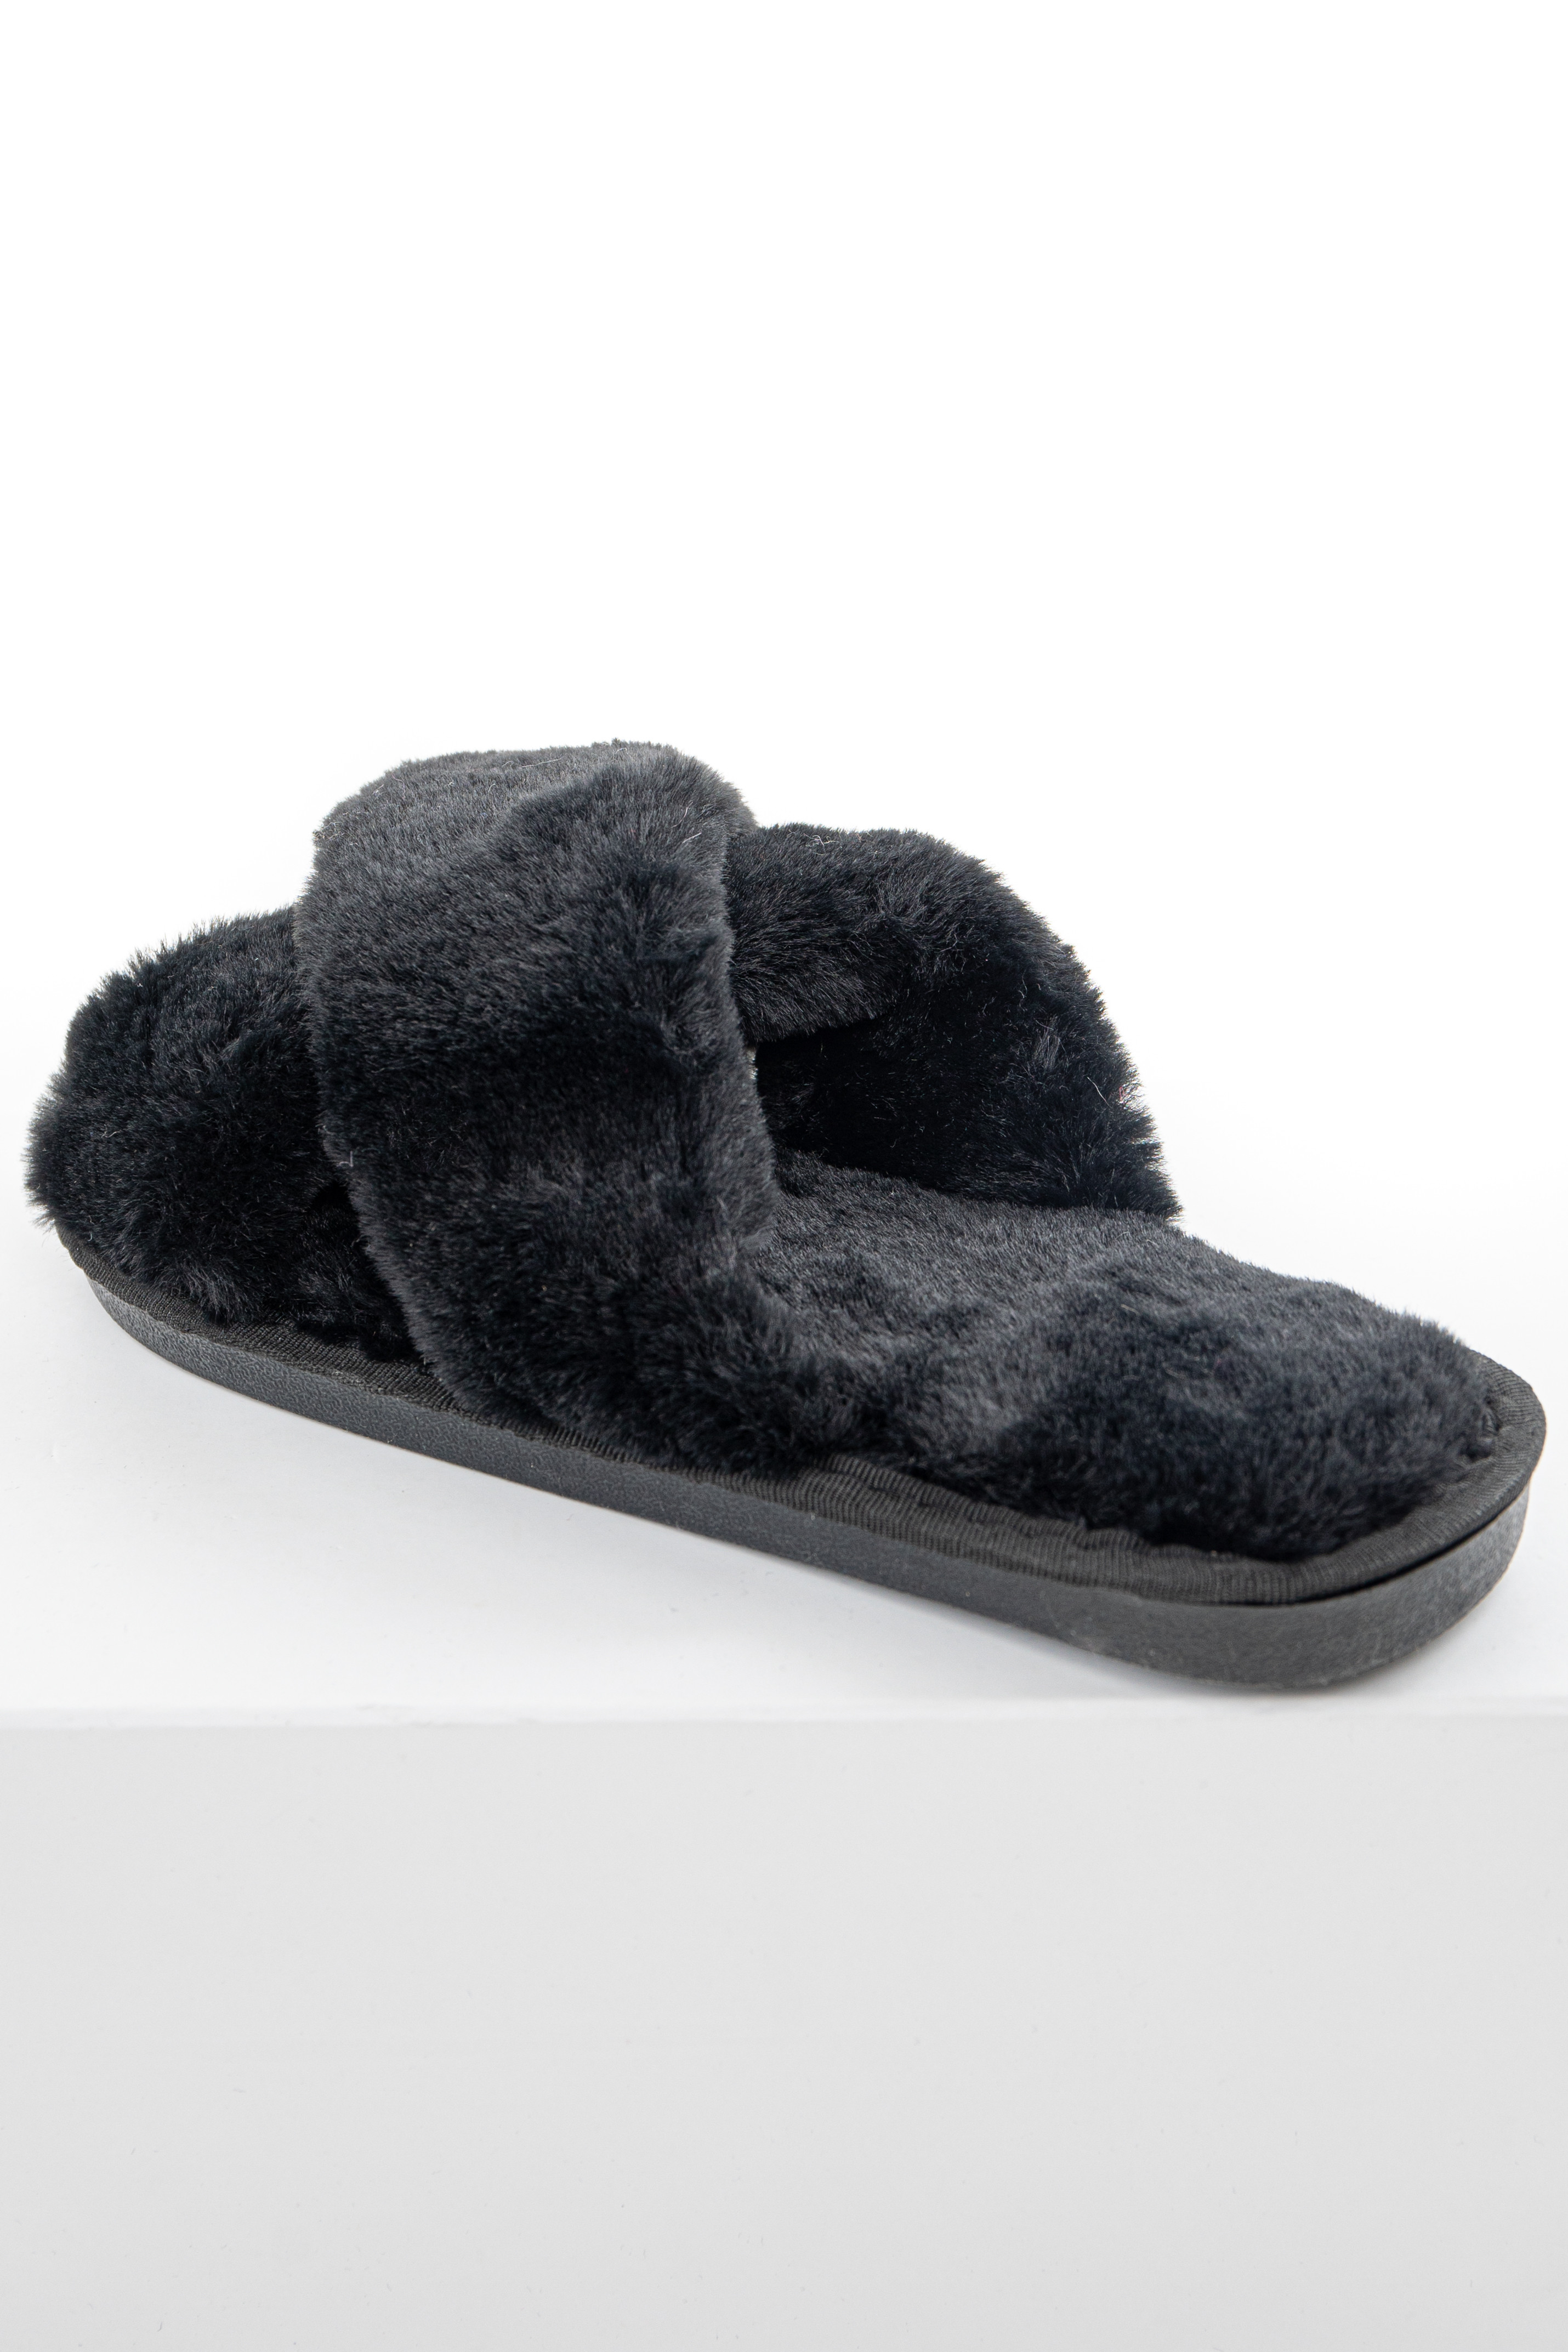 Black Super Soft Fuzzy Slippers with Criss Cross Straps